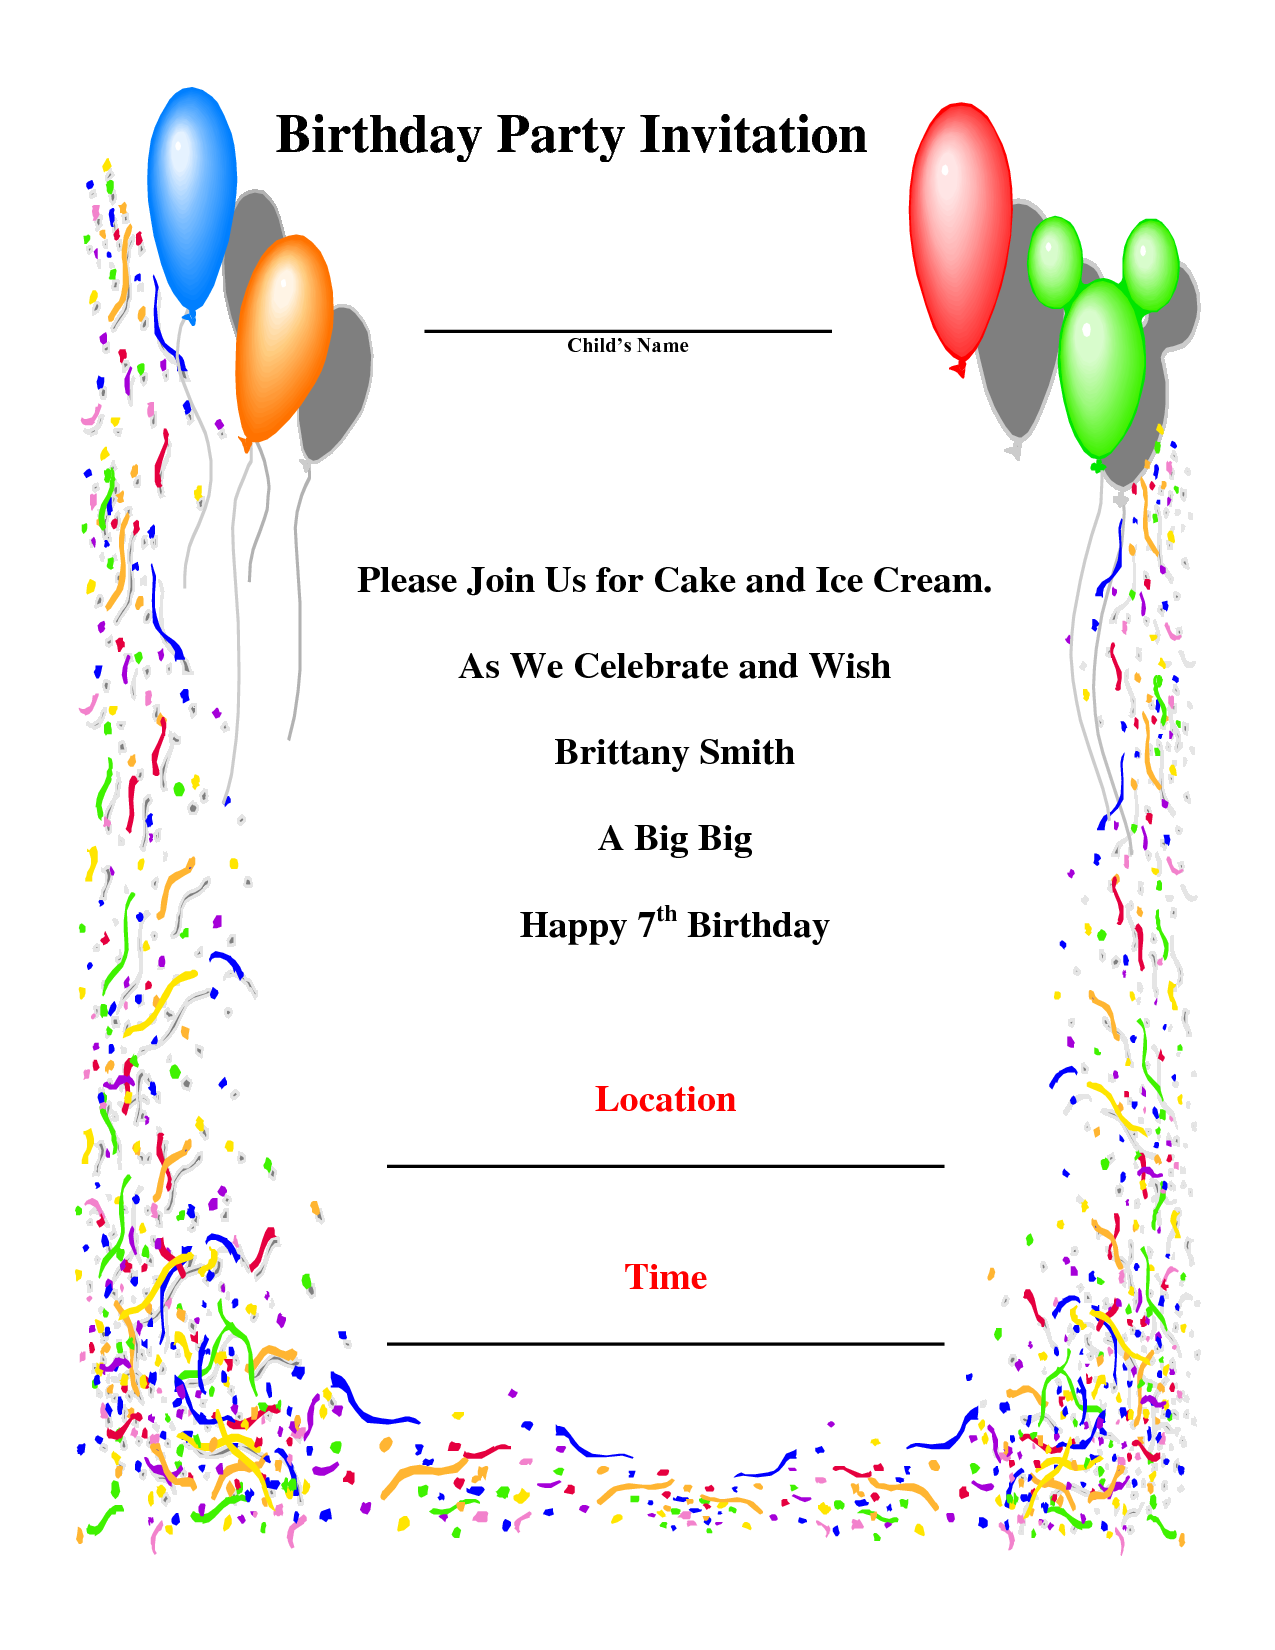 Celebrate clipart invitation. Birthday cards for party